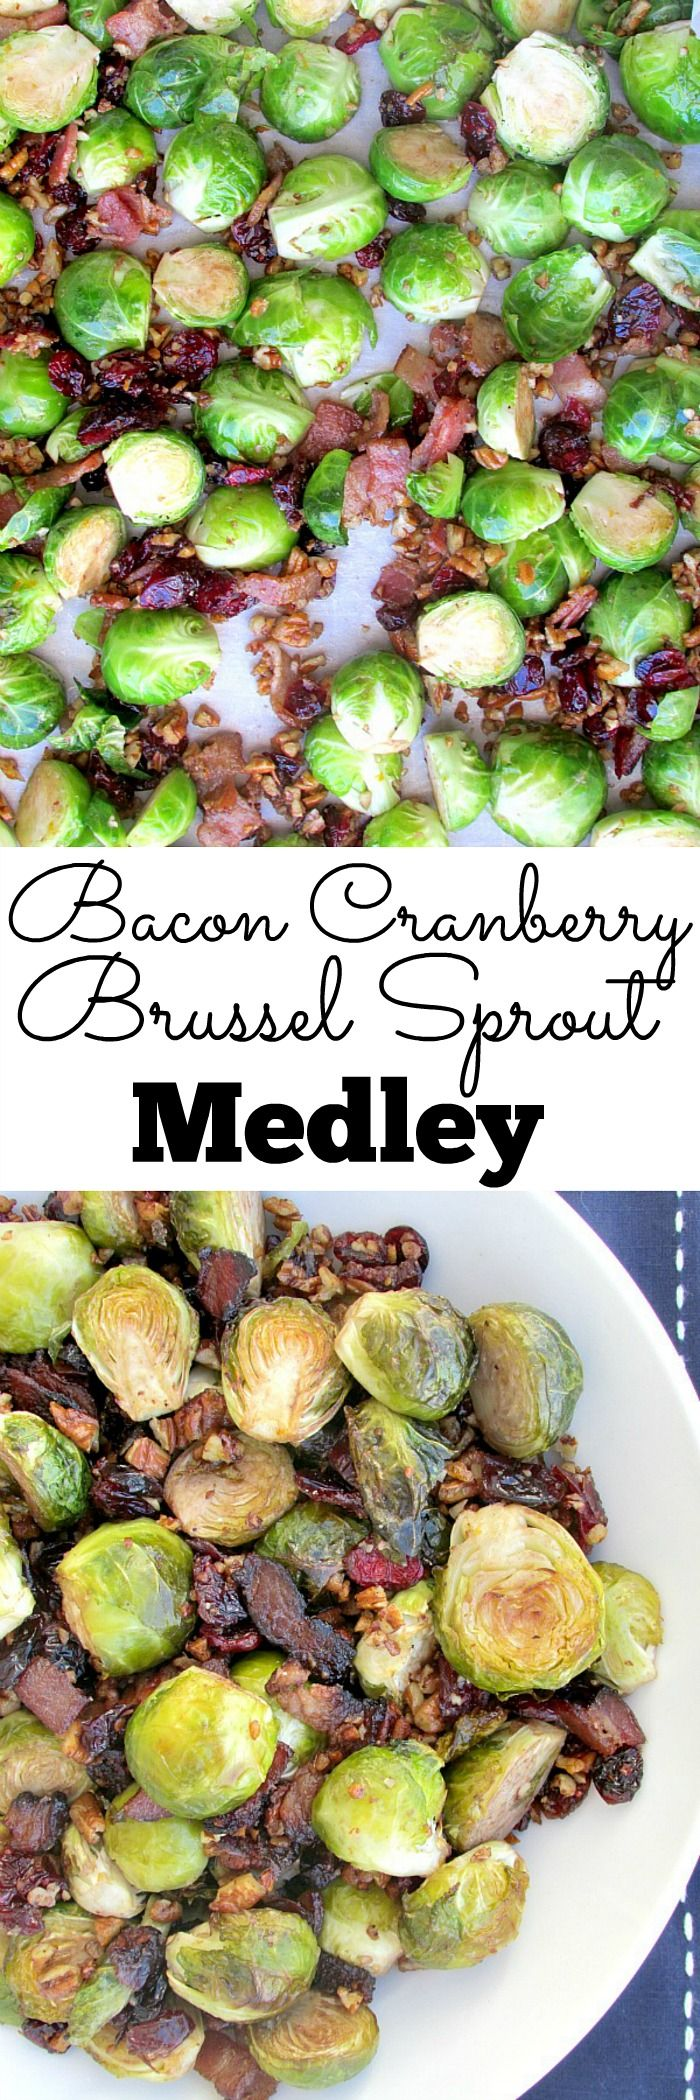 Bacon Cranberry Brussel Sprout Medley - This amazing dish is very easy to throw together, and it has a great combination of flavors. Savory bacon, sweet/tart cranberries, and a hint of orange zest! It can be our nod to greens at the Thanksgiving dinner table! | louloubiscuit.com